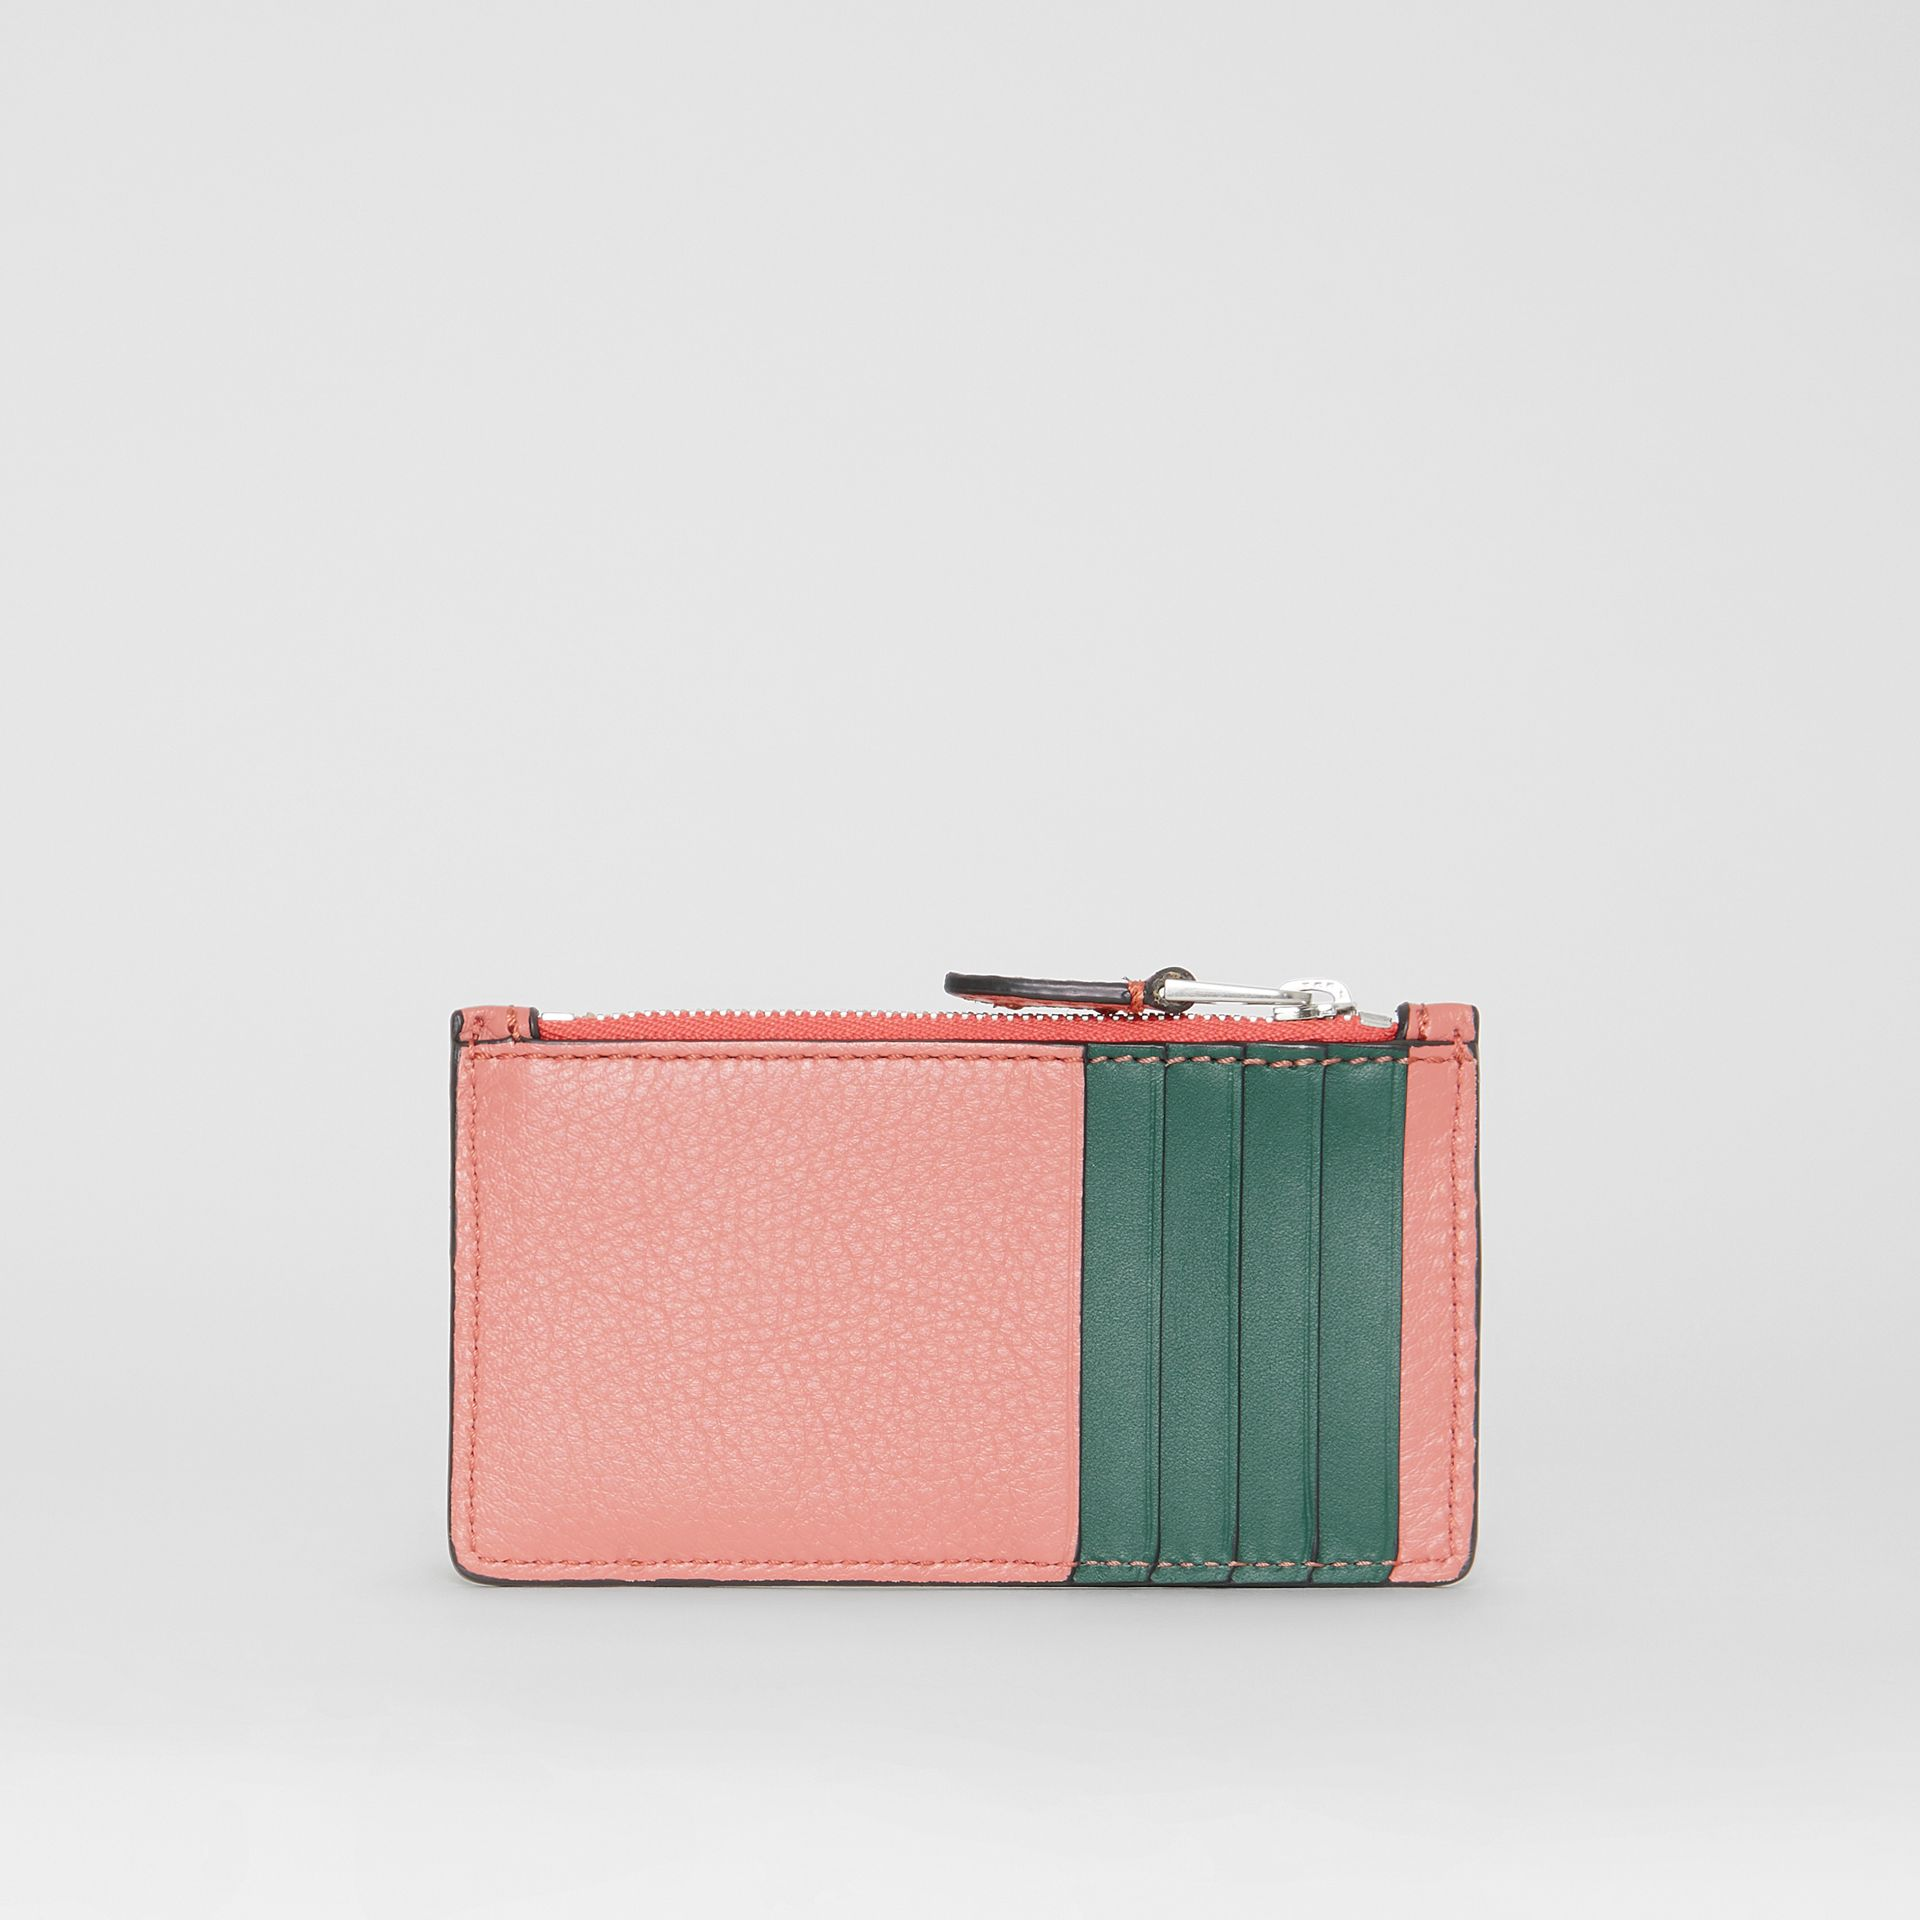 Two-tone Leather Zip Card Case in Dusty Rose - Women | Burberry Singapore - gallery image 4